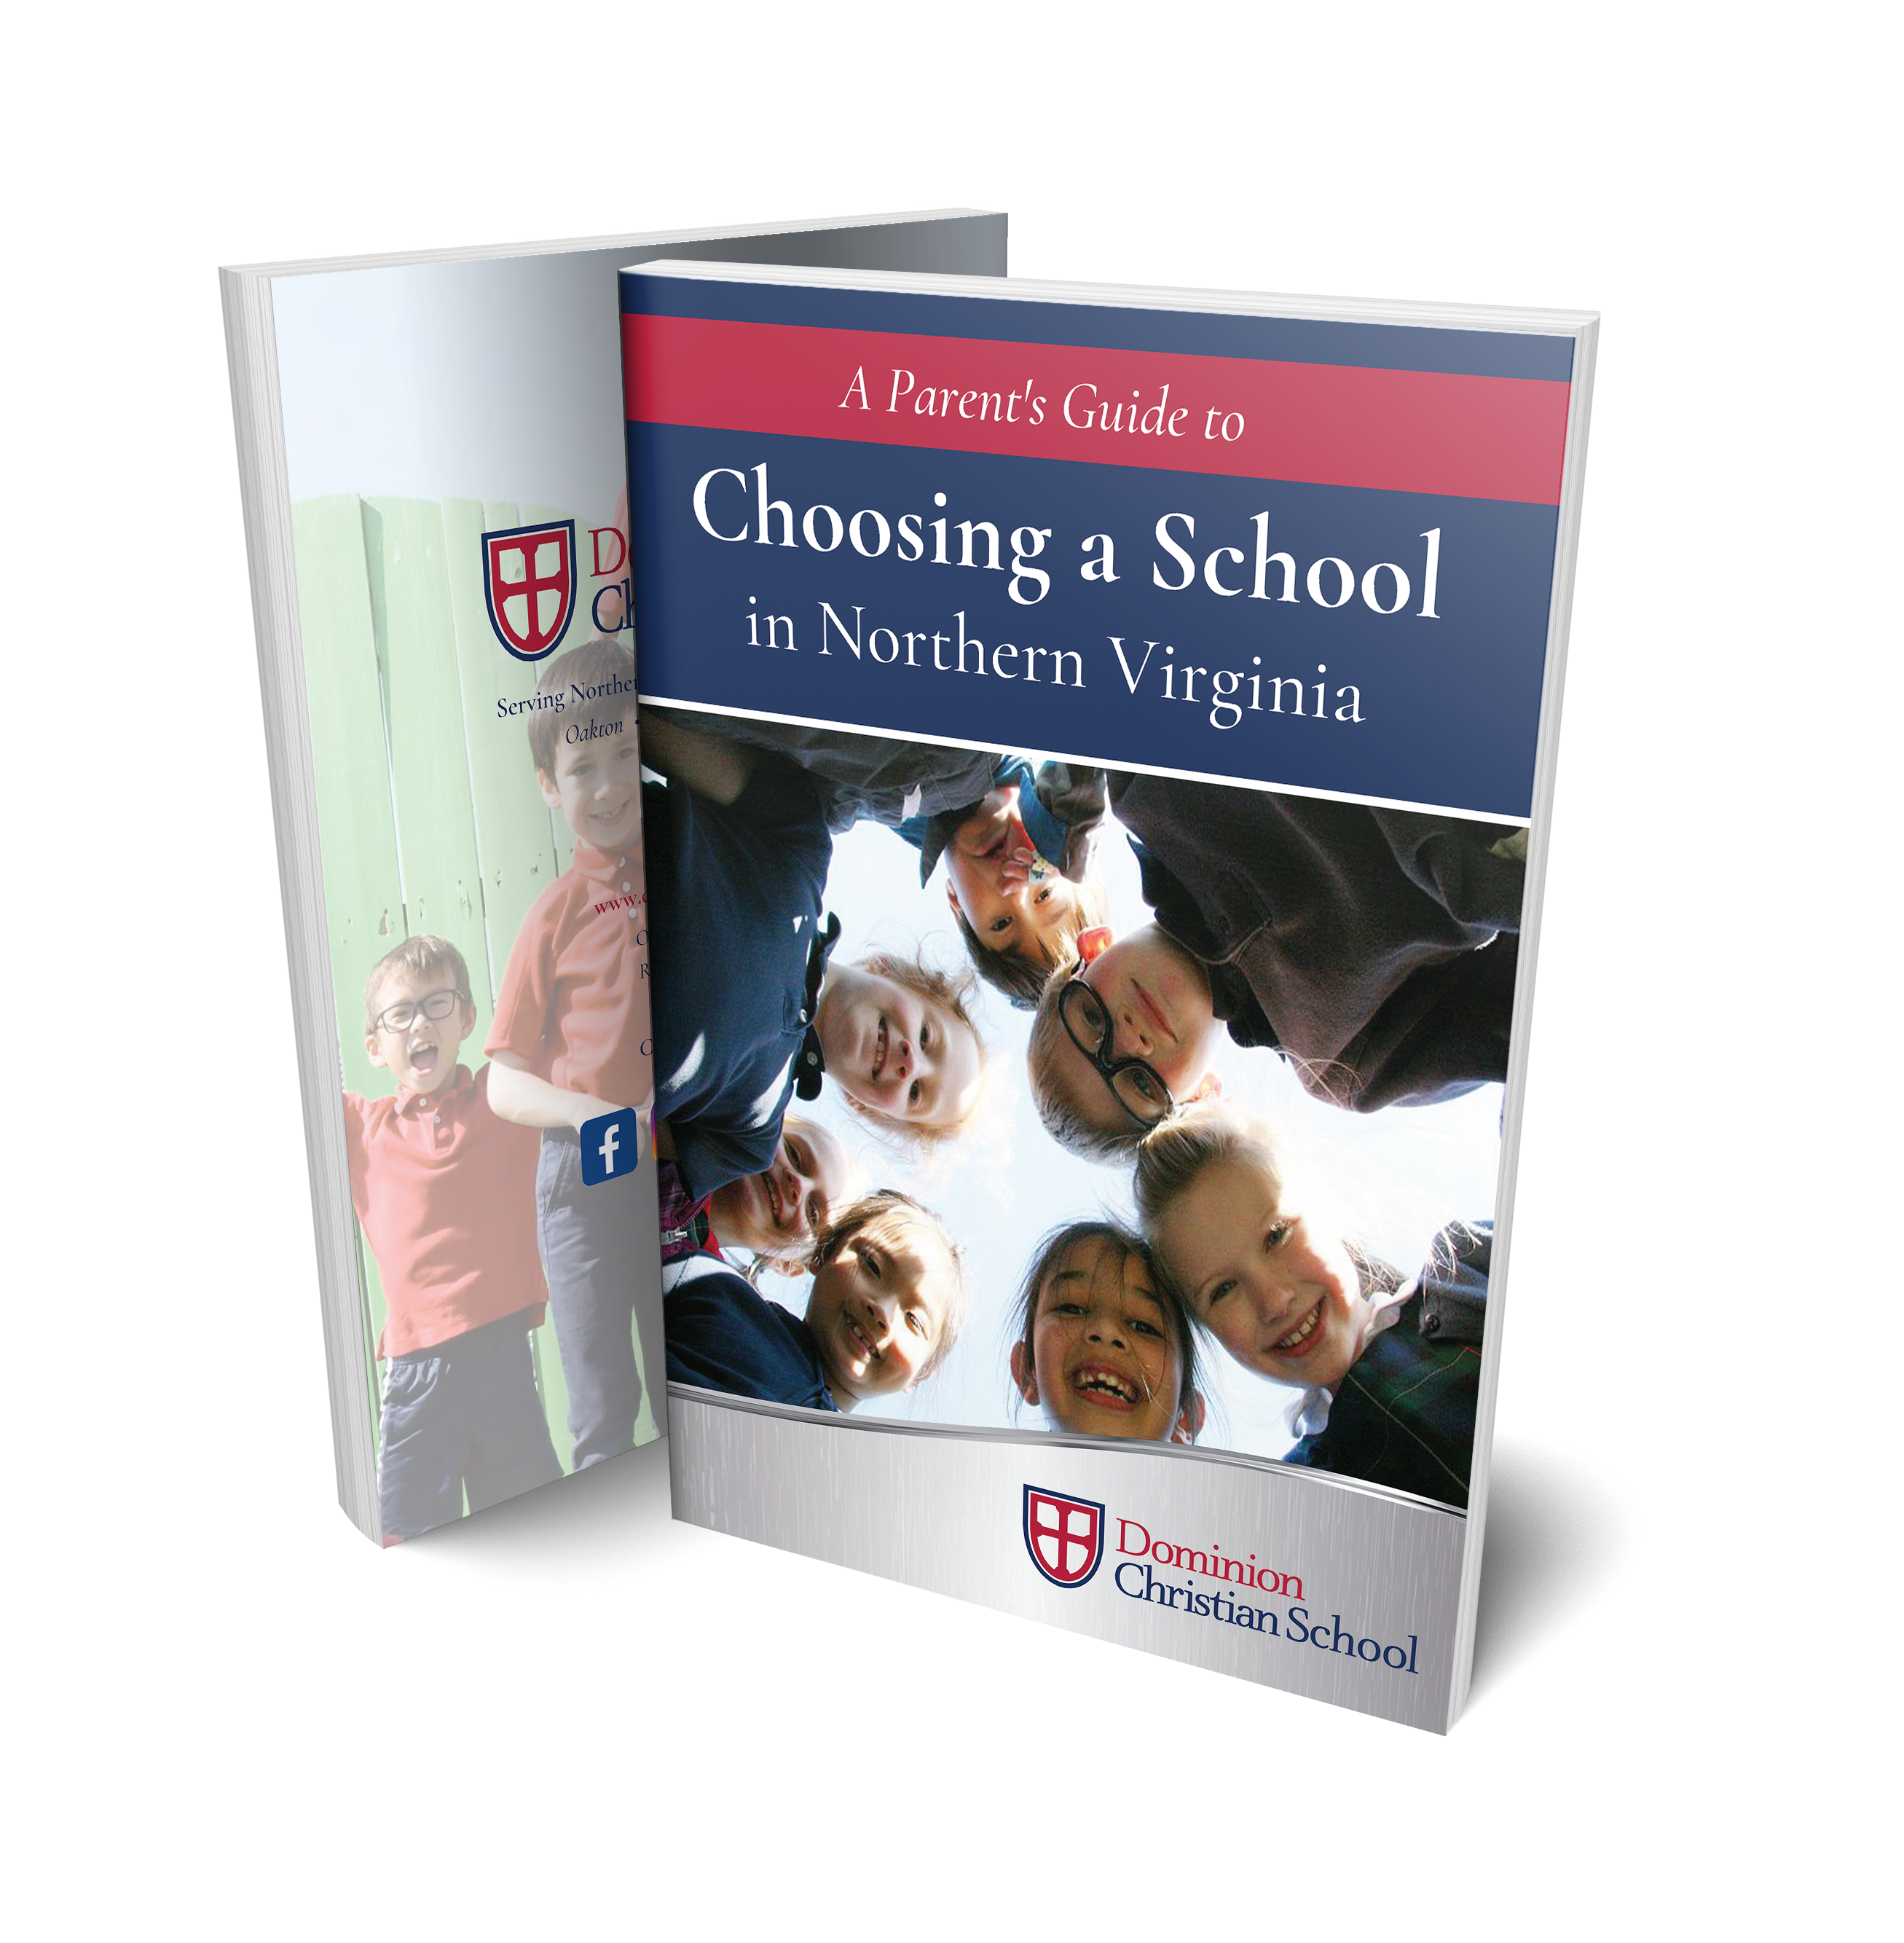 A Parent's Guide to Choosing a School in Northern Virginia